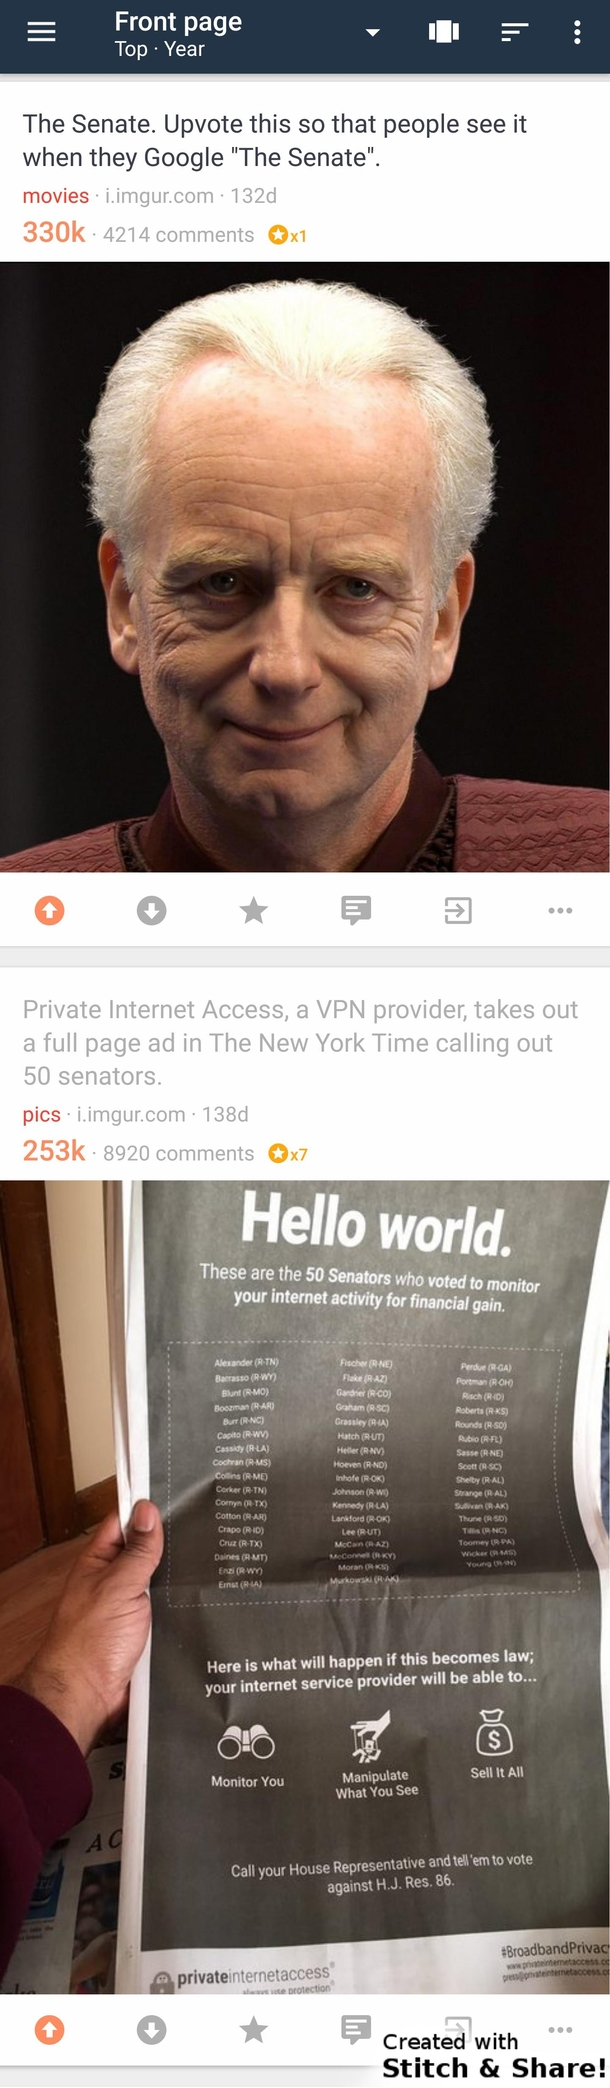 These two posts on my Frontpage this morning